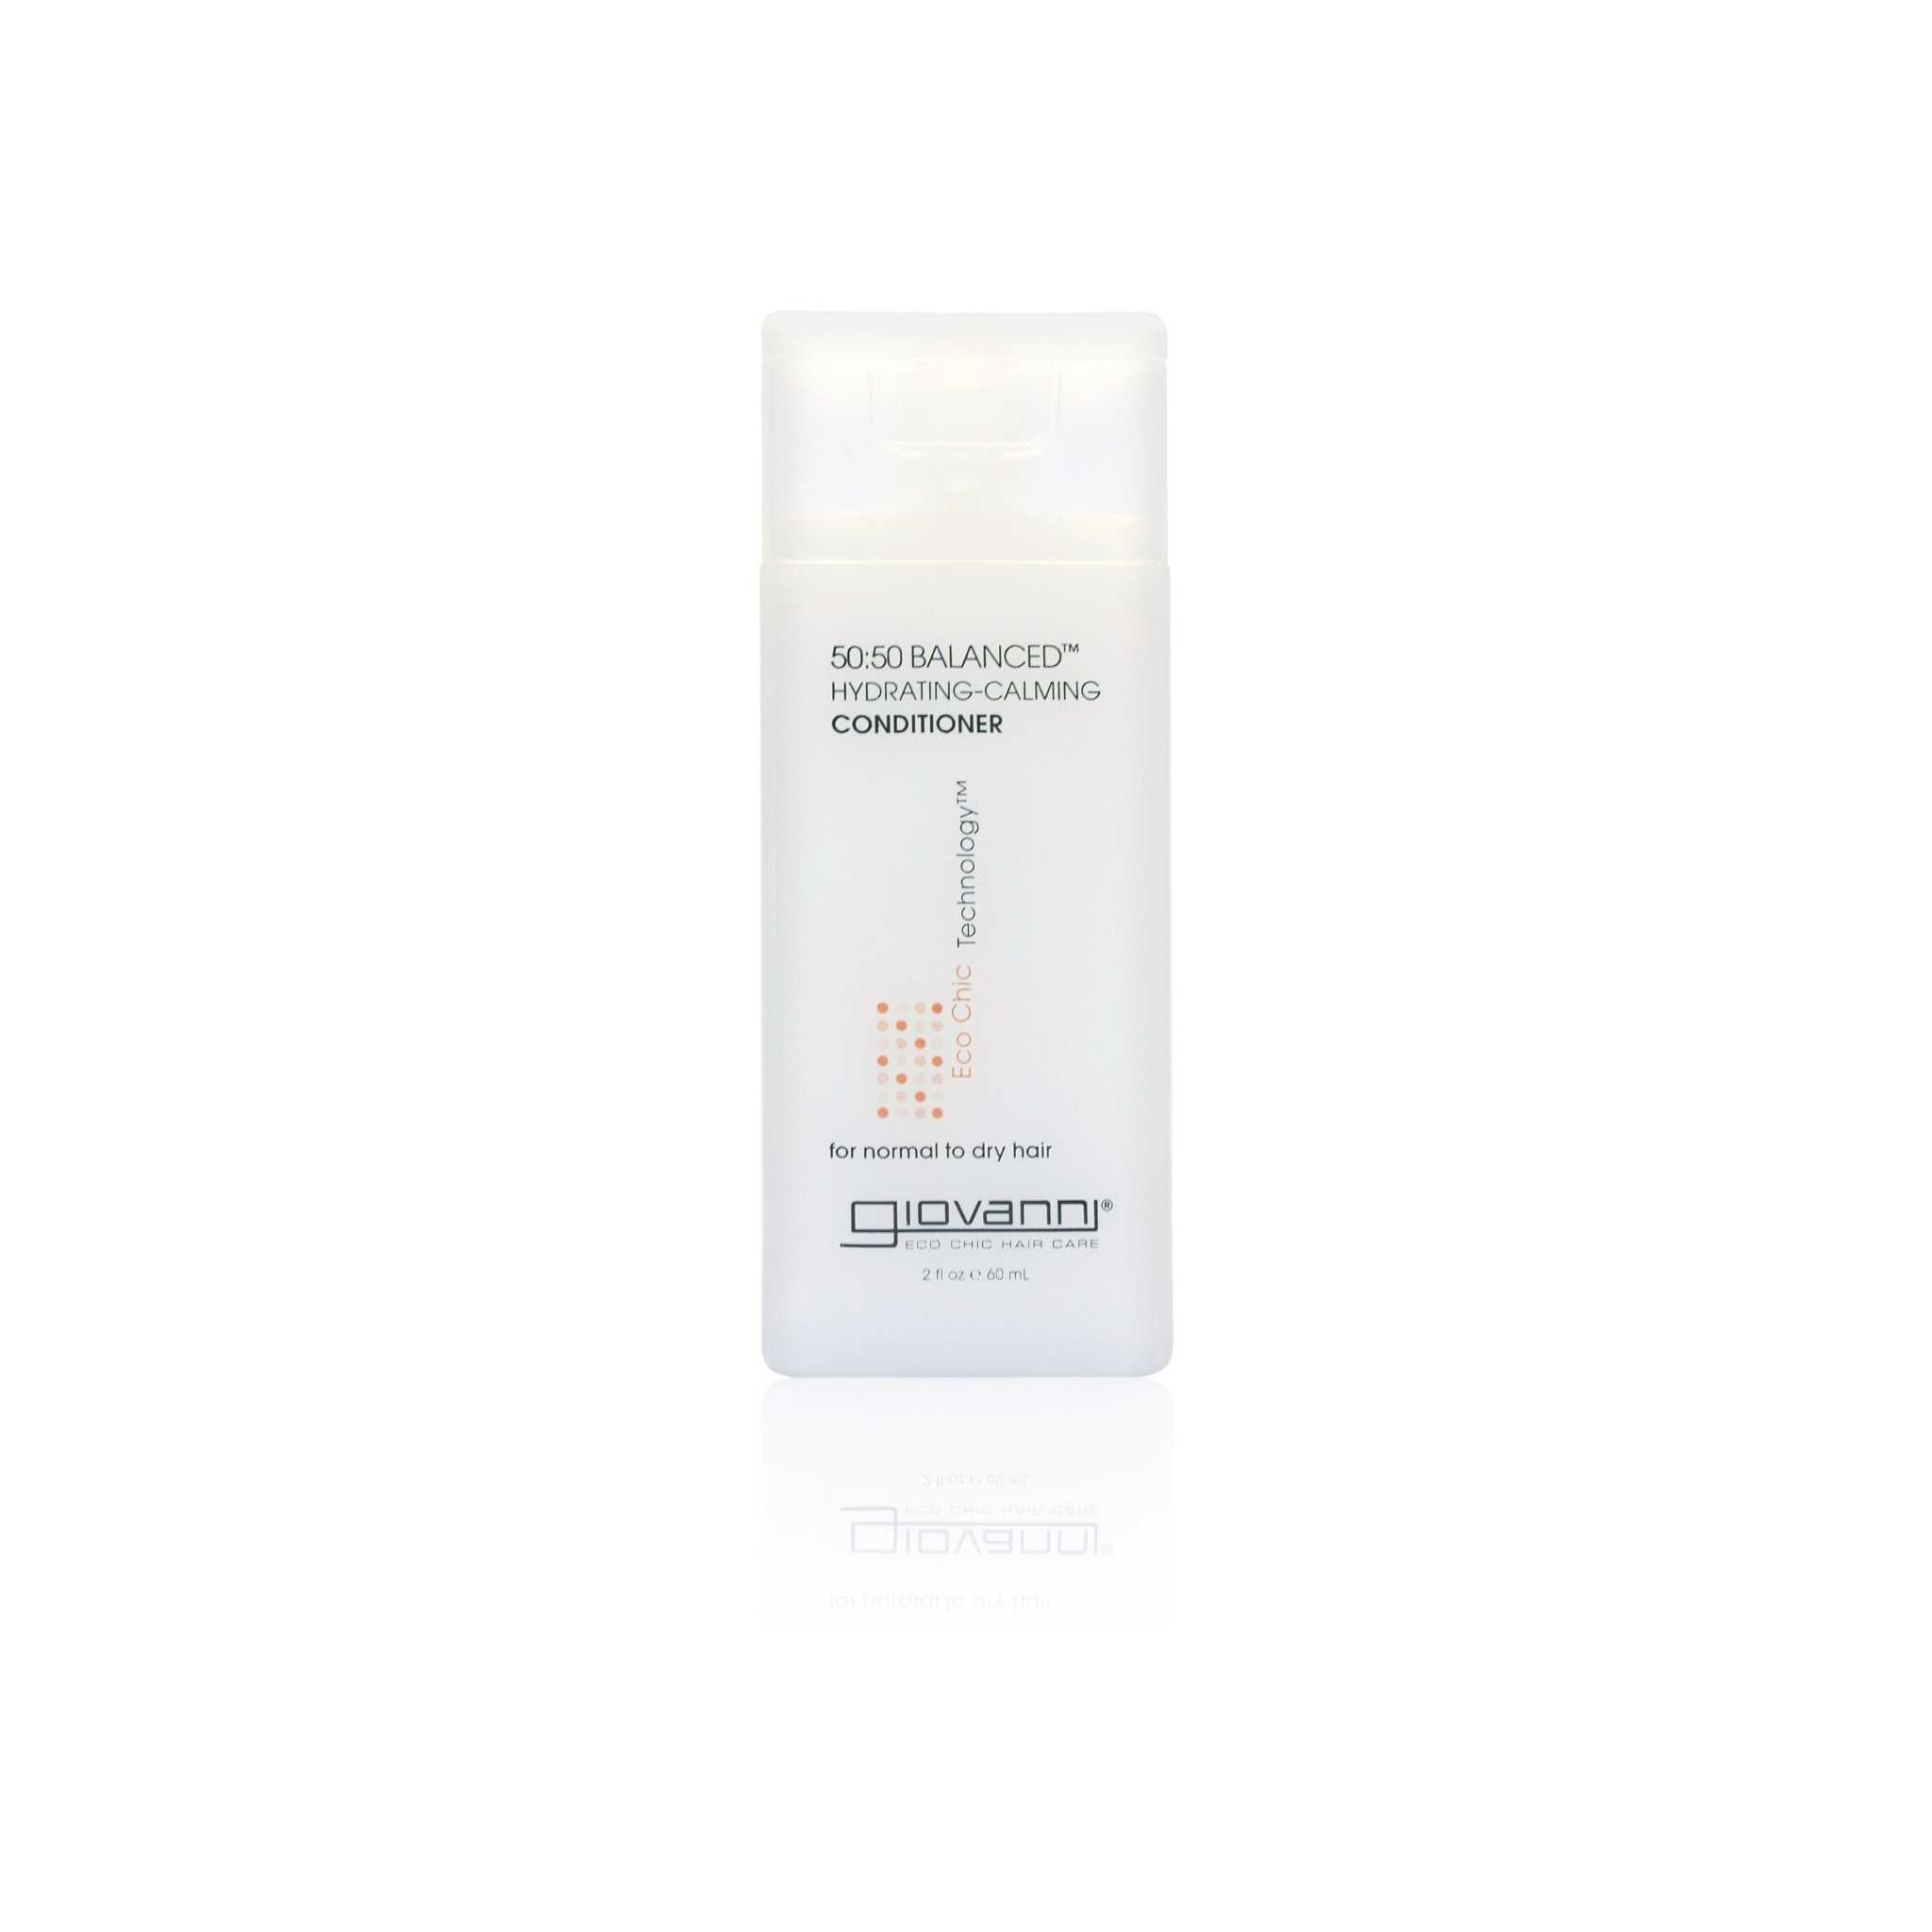 Giovanni 50:50 Balanced™ Hydrating-calming Conditioner 60ML | Free Shipping